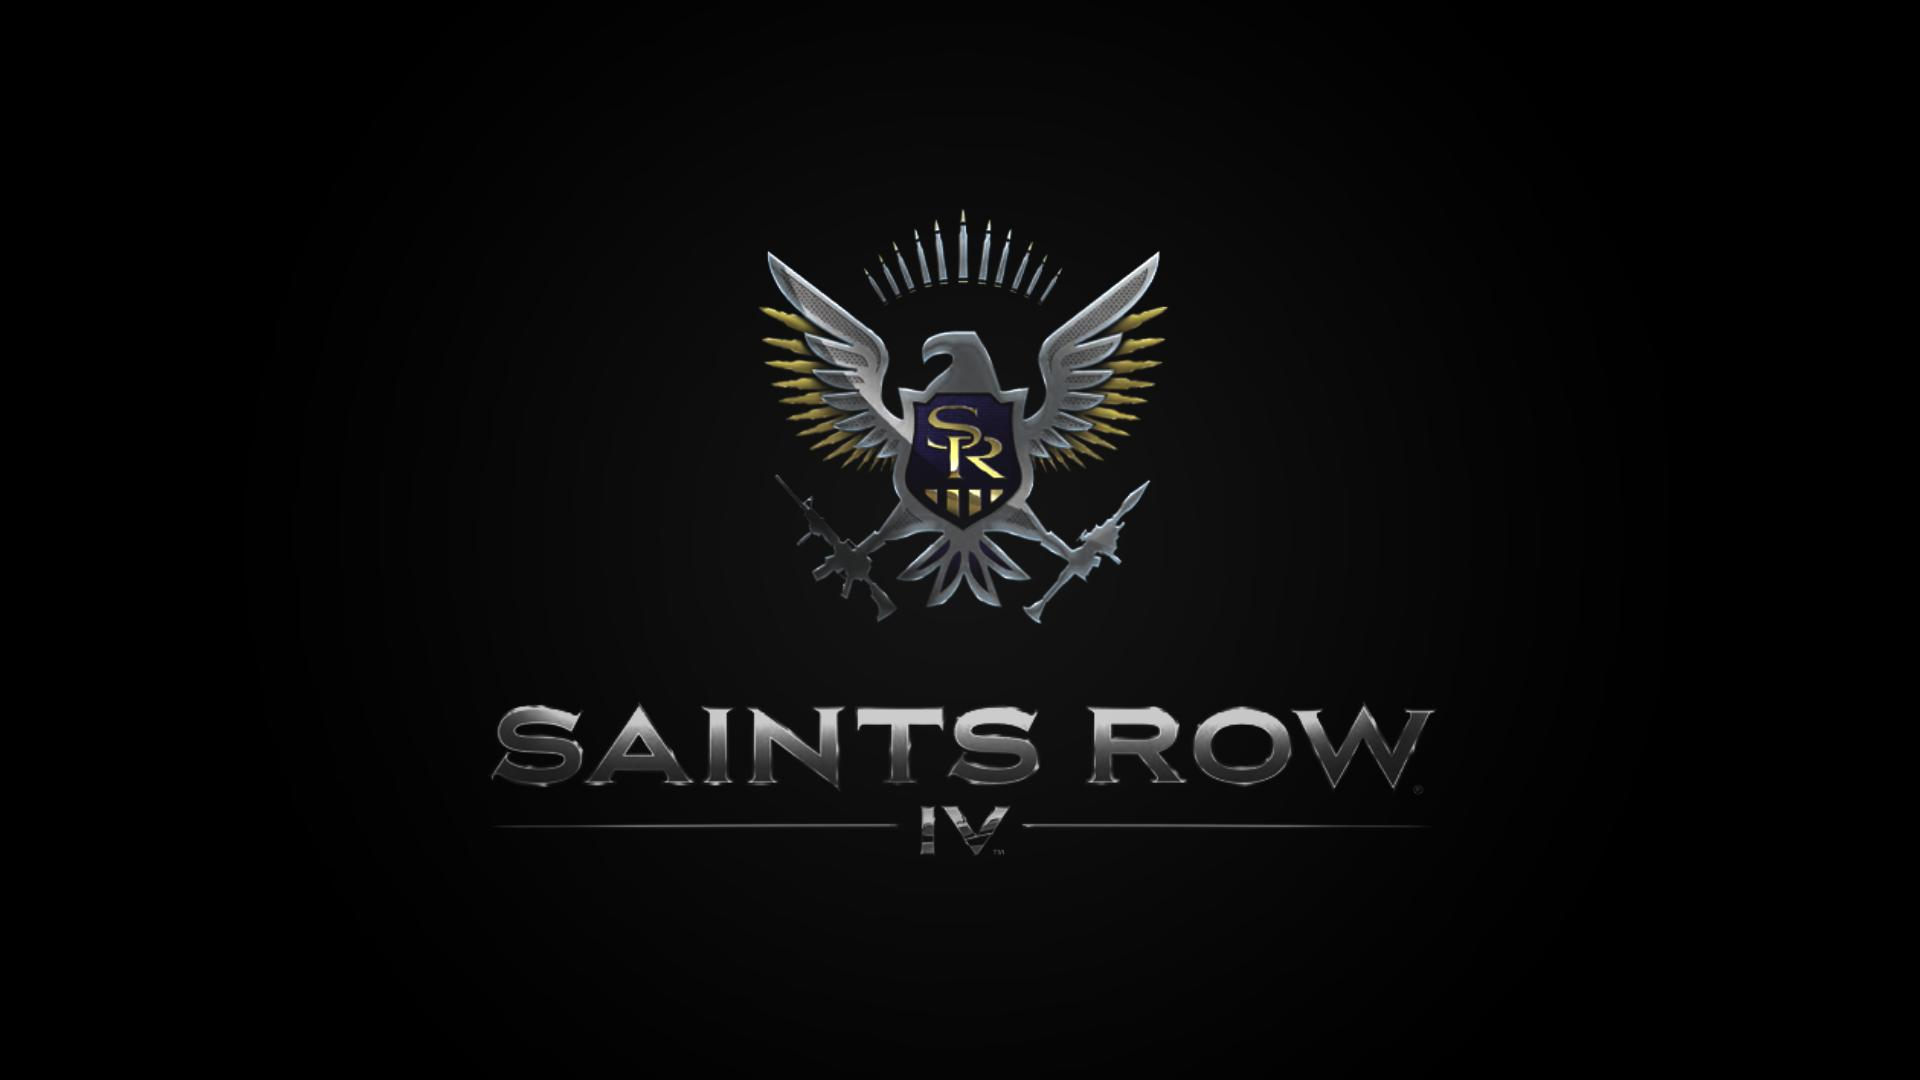 Saints row iv saints row iv xboxsaints row voltagebd Images